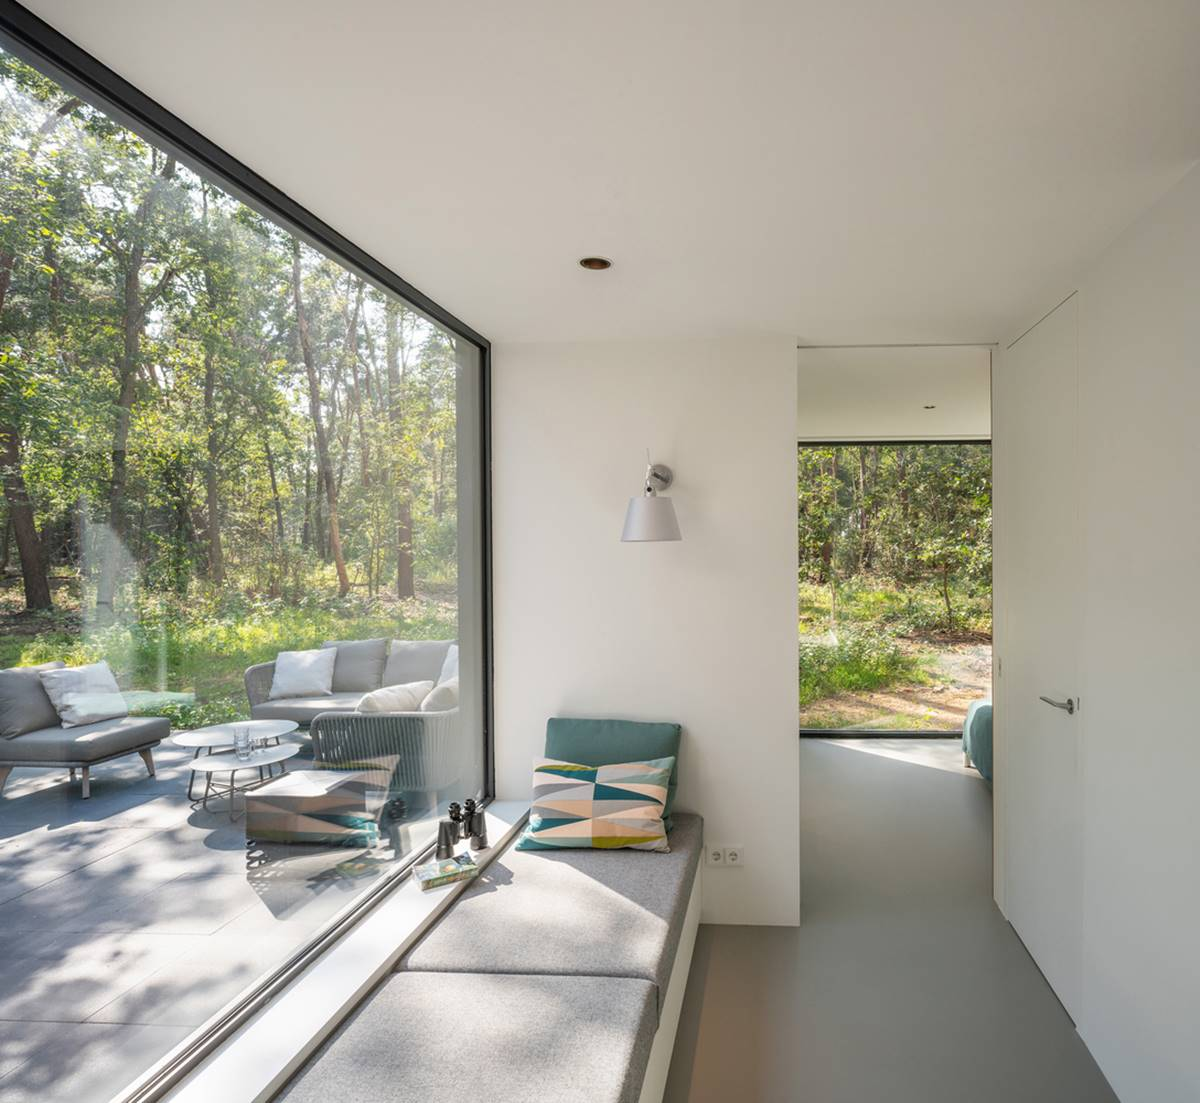 Panoramic window in a forest villa